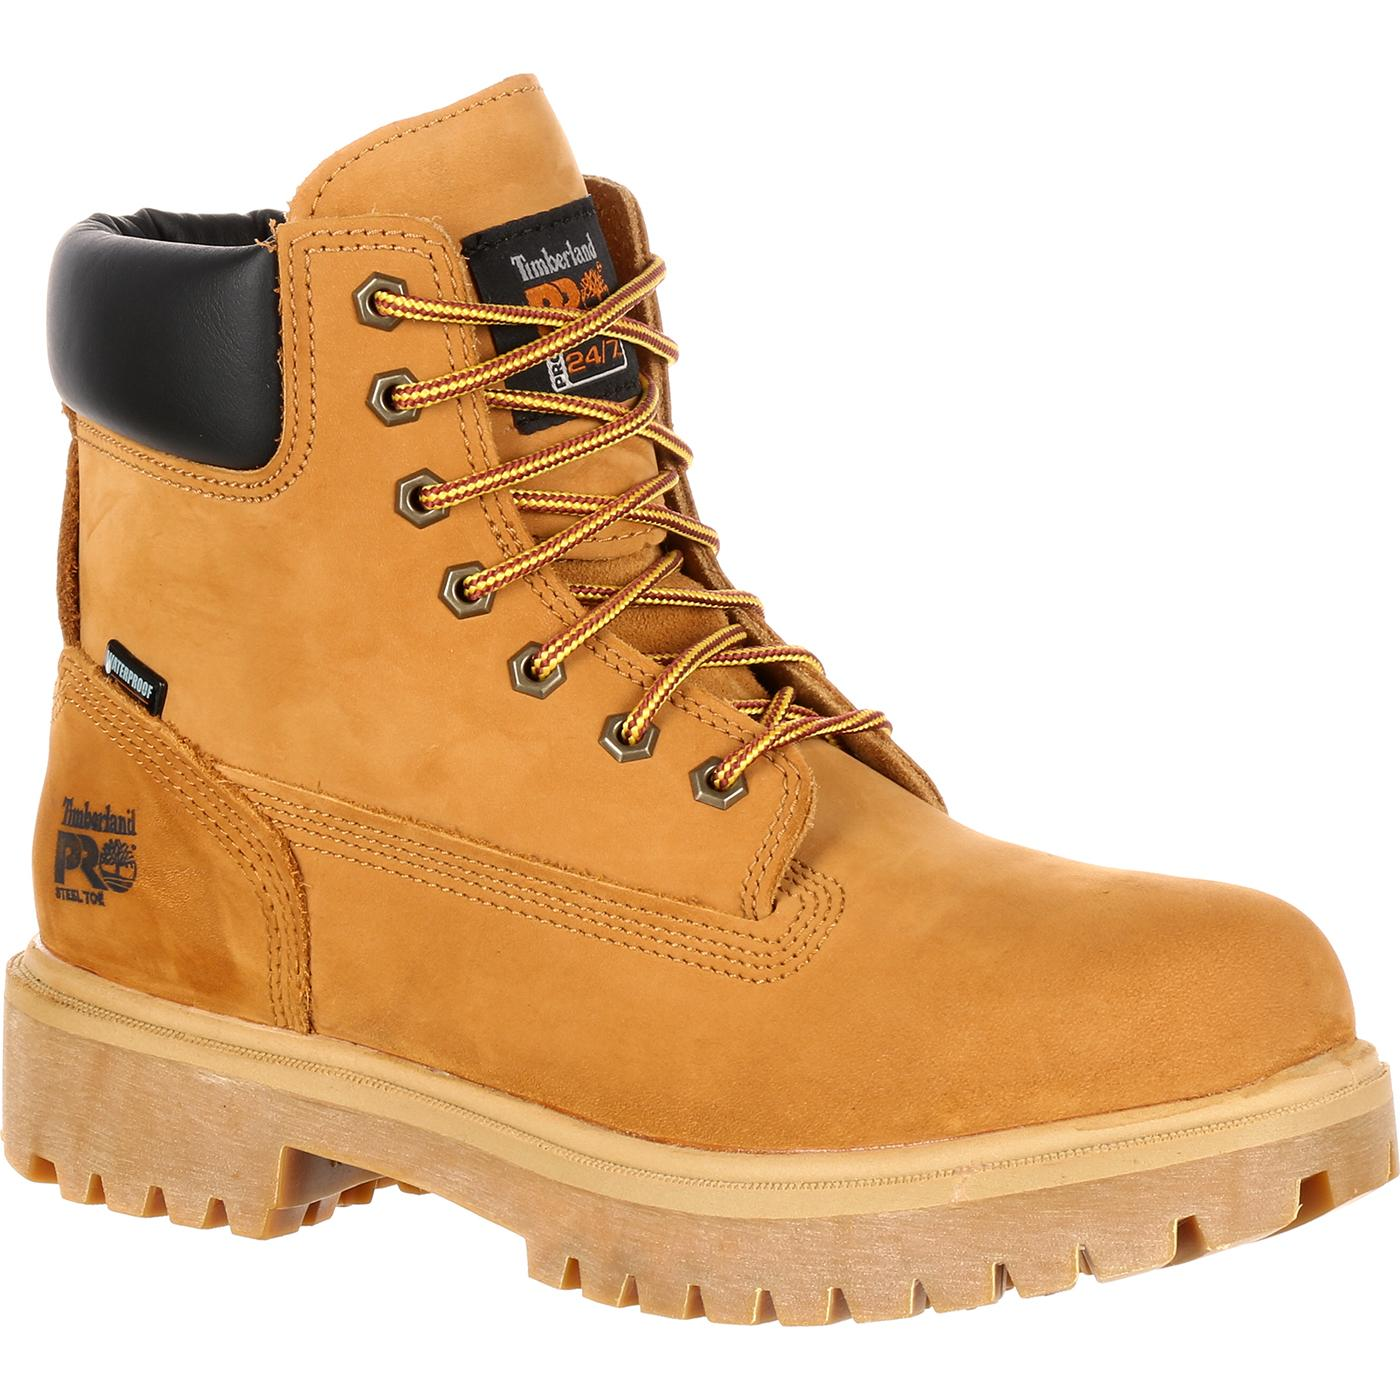 Timberland PRO Direct Attach Steel Toe Waterproof 200g ... Timberland Pro